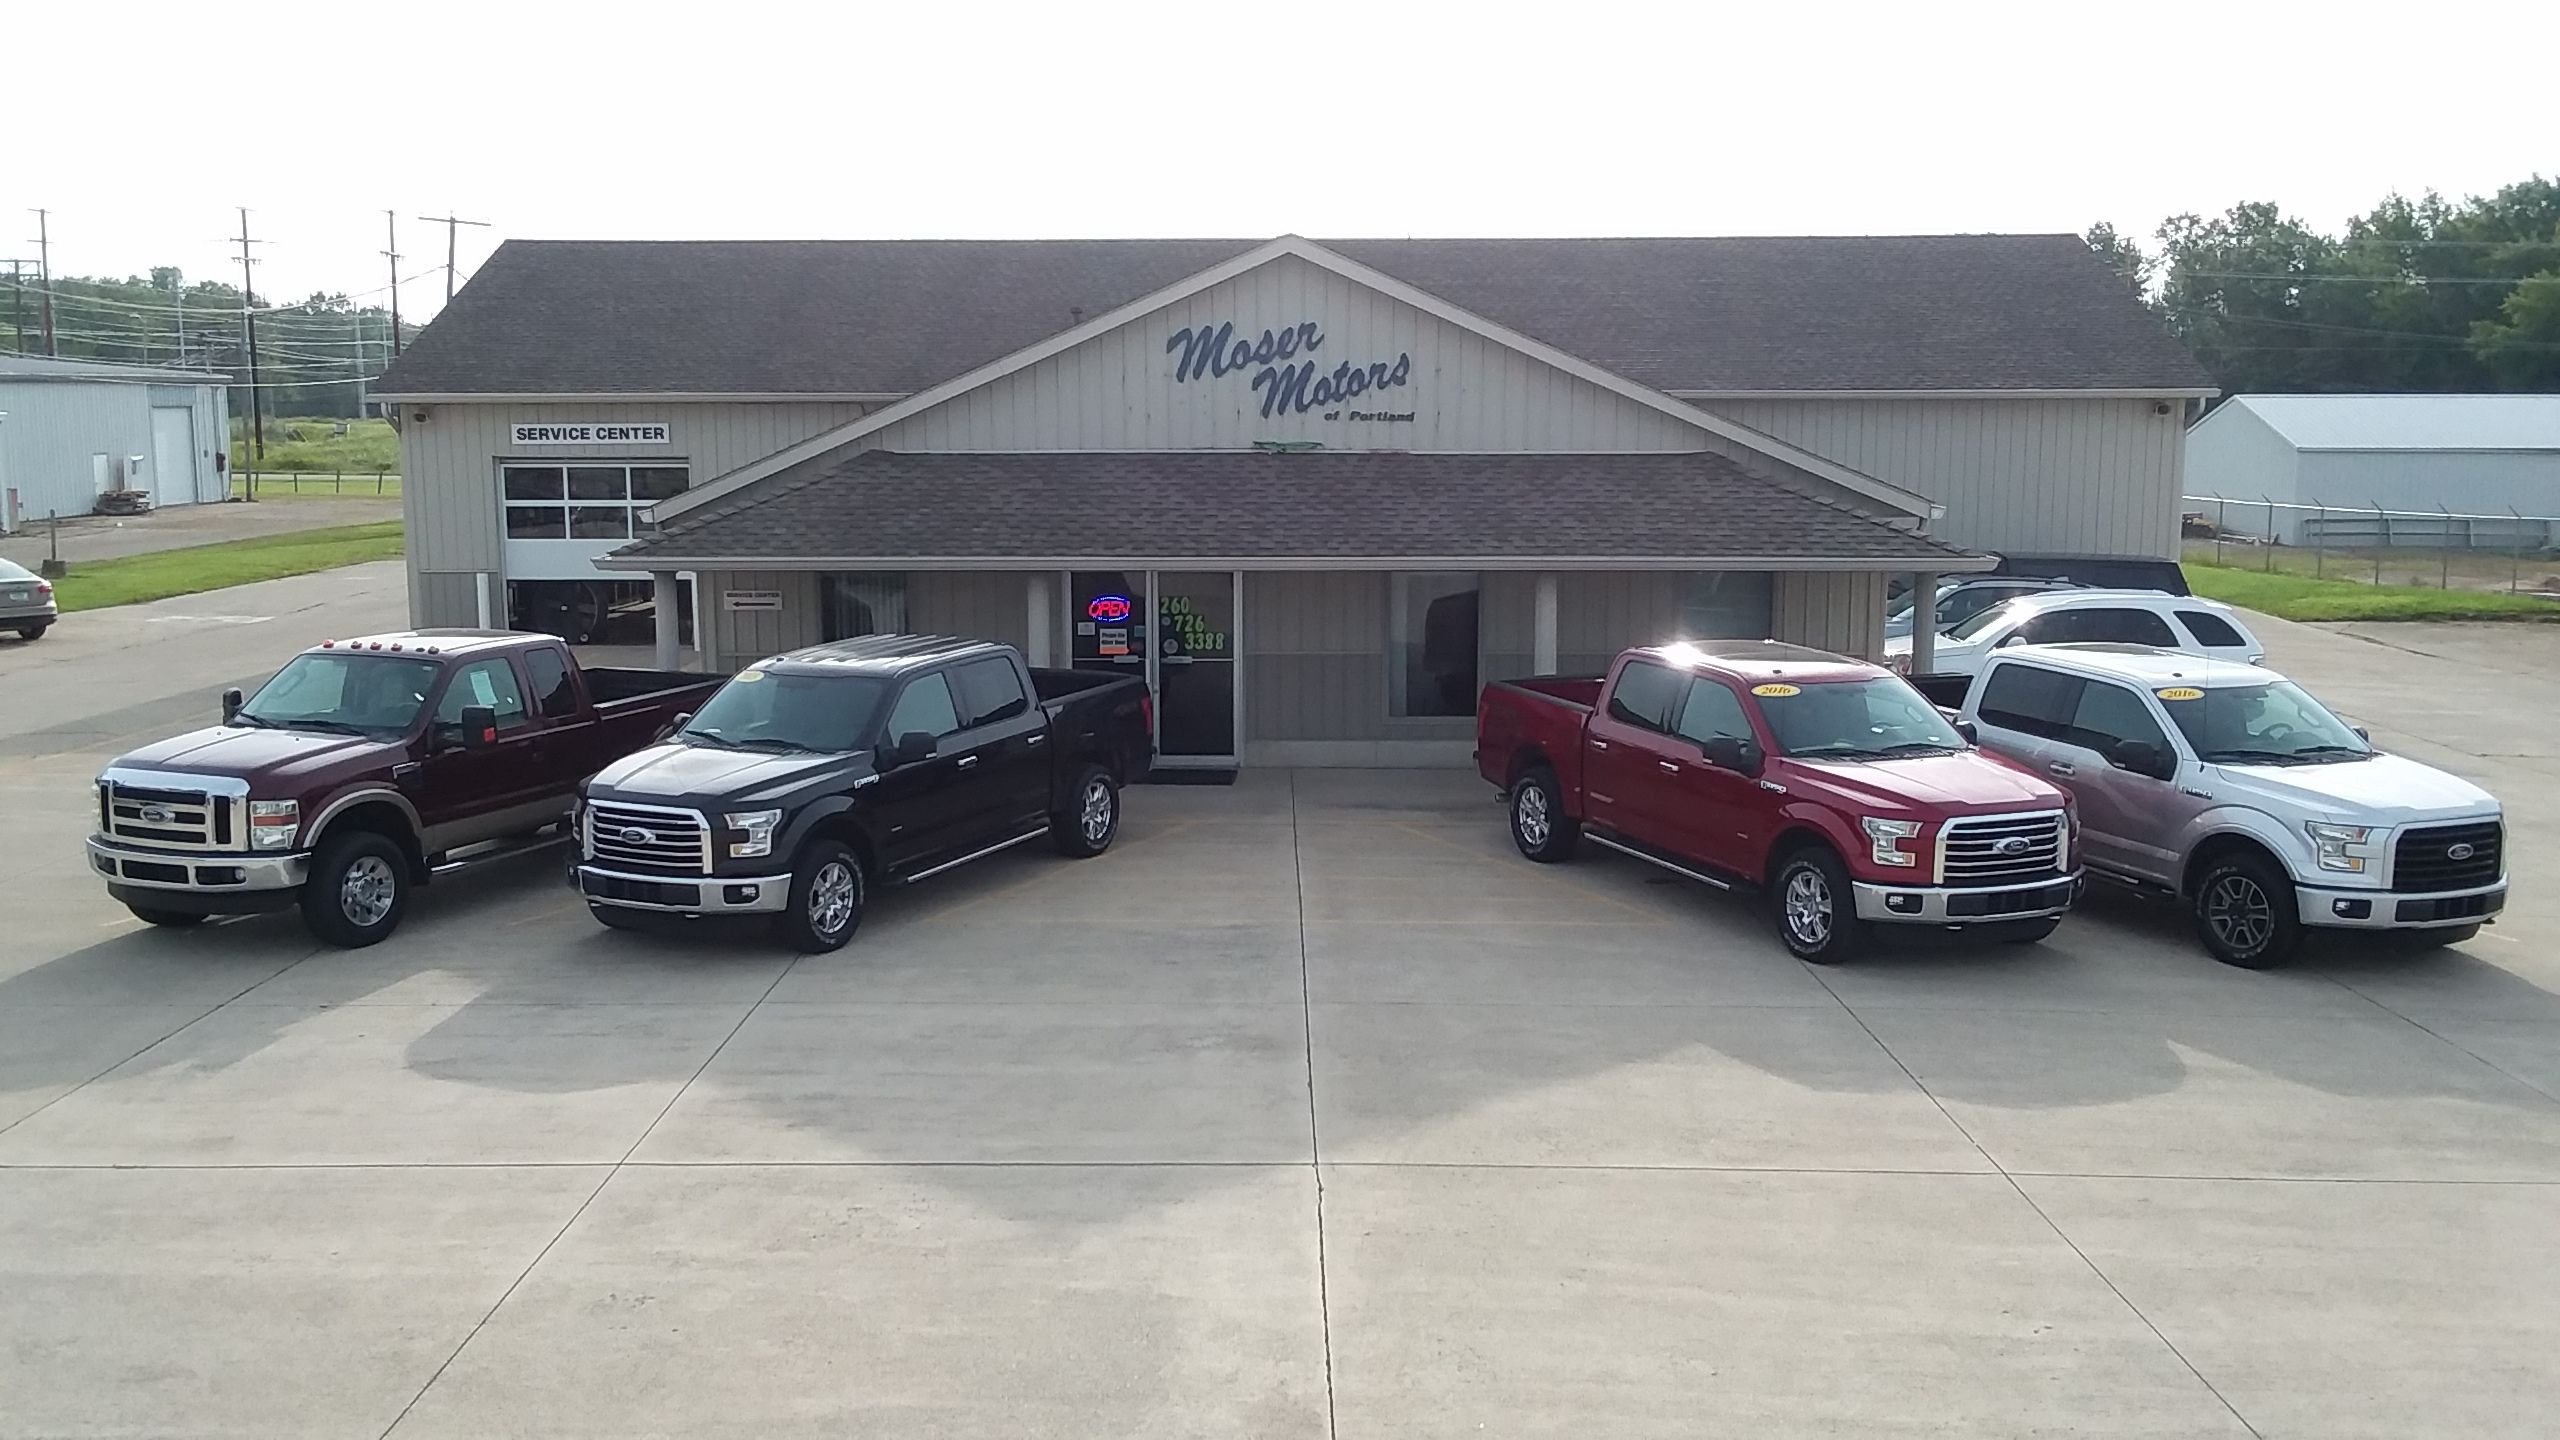 Moser Motor Sales Portland Indiana Ford Service Center Ford Fort Wayne Indiana